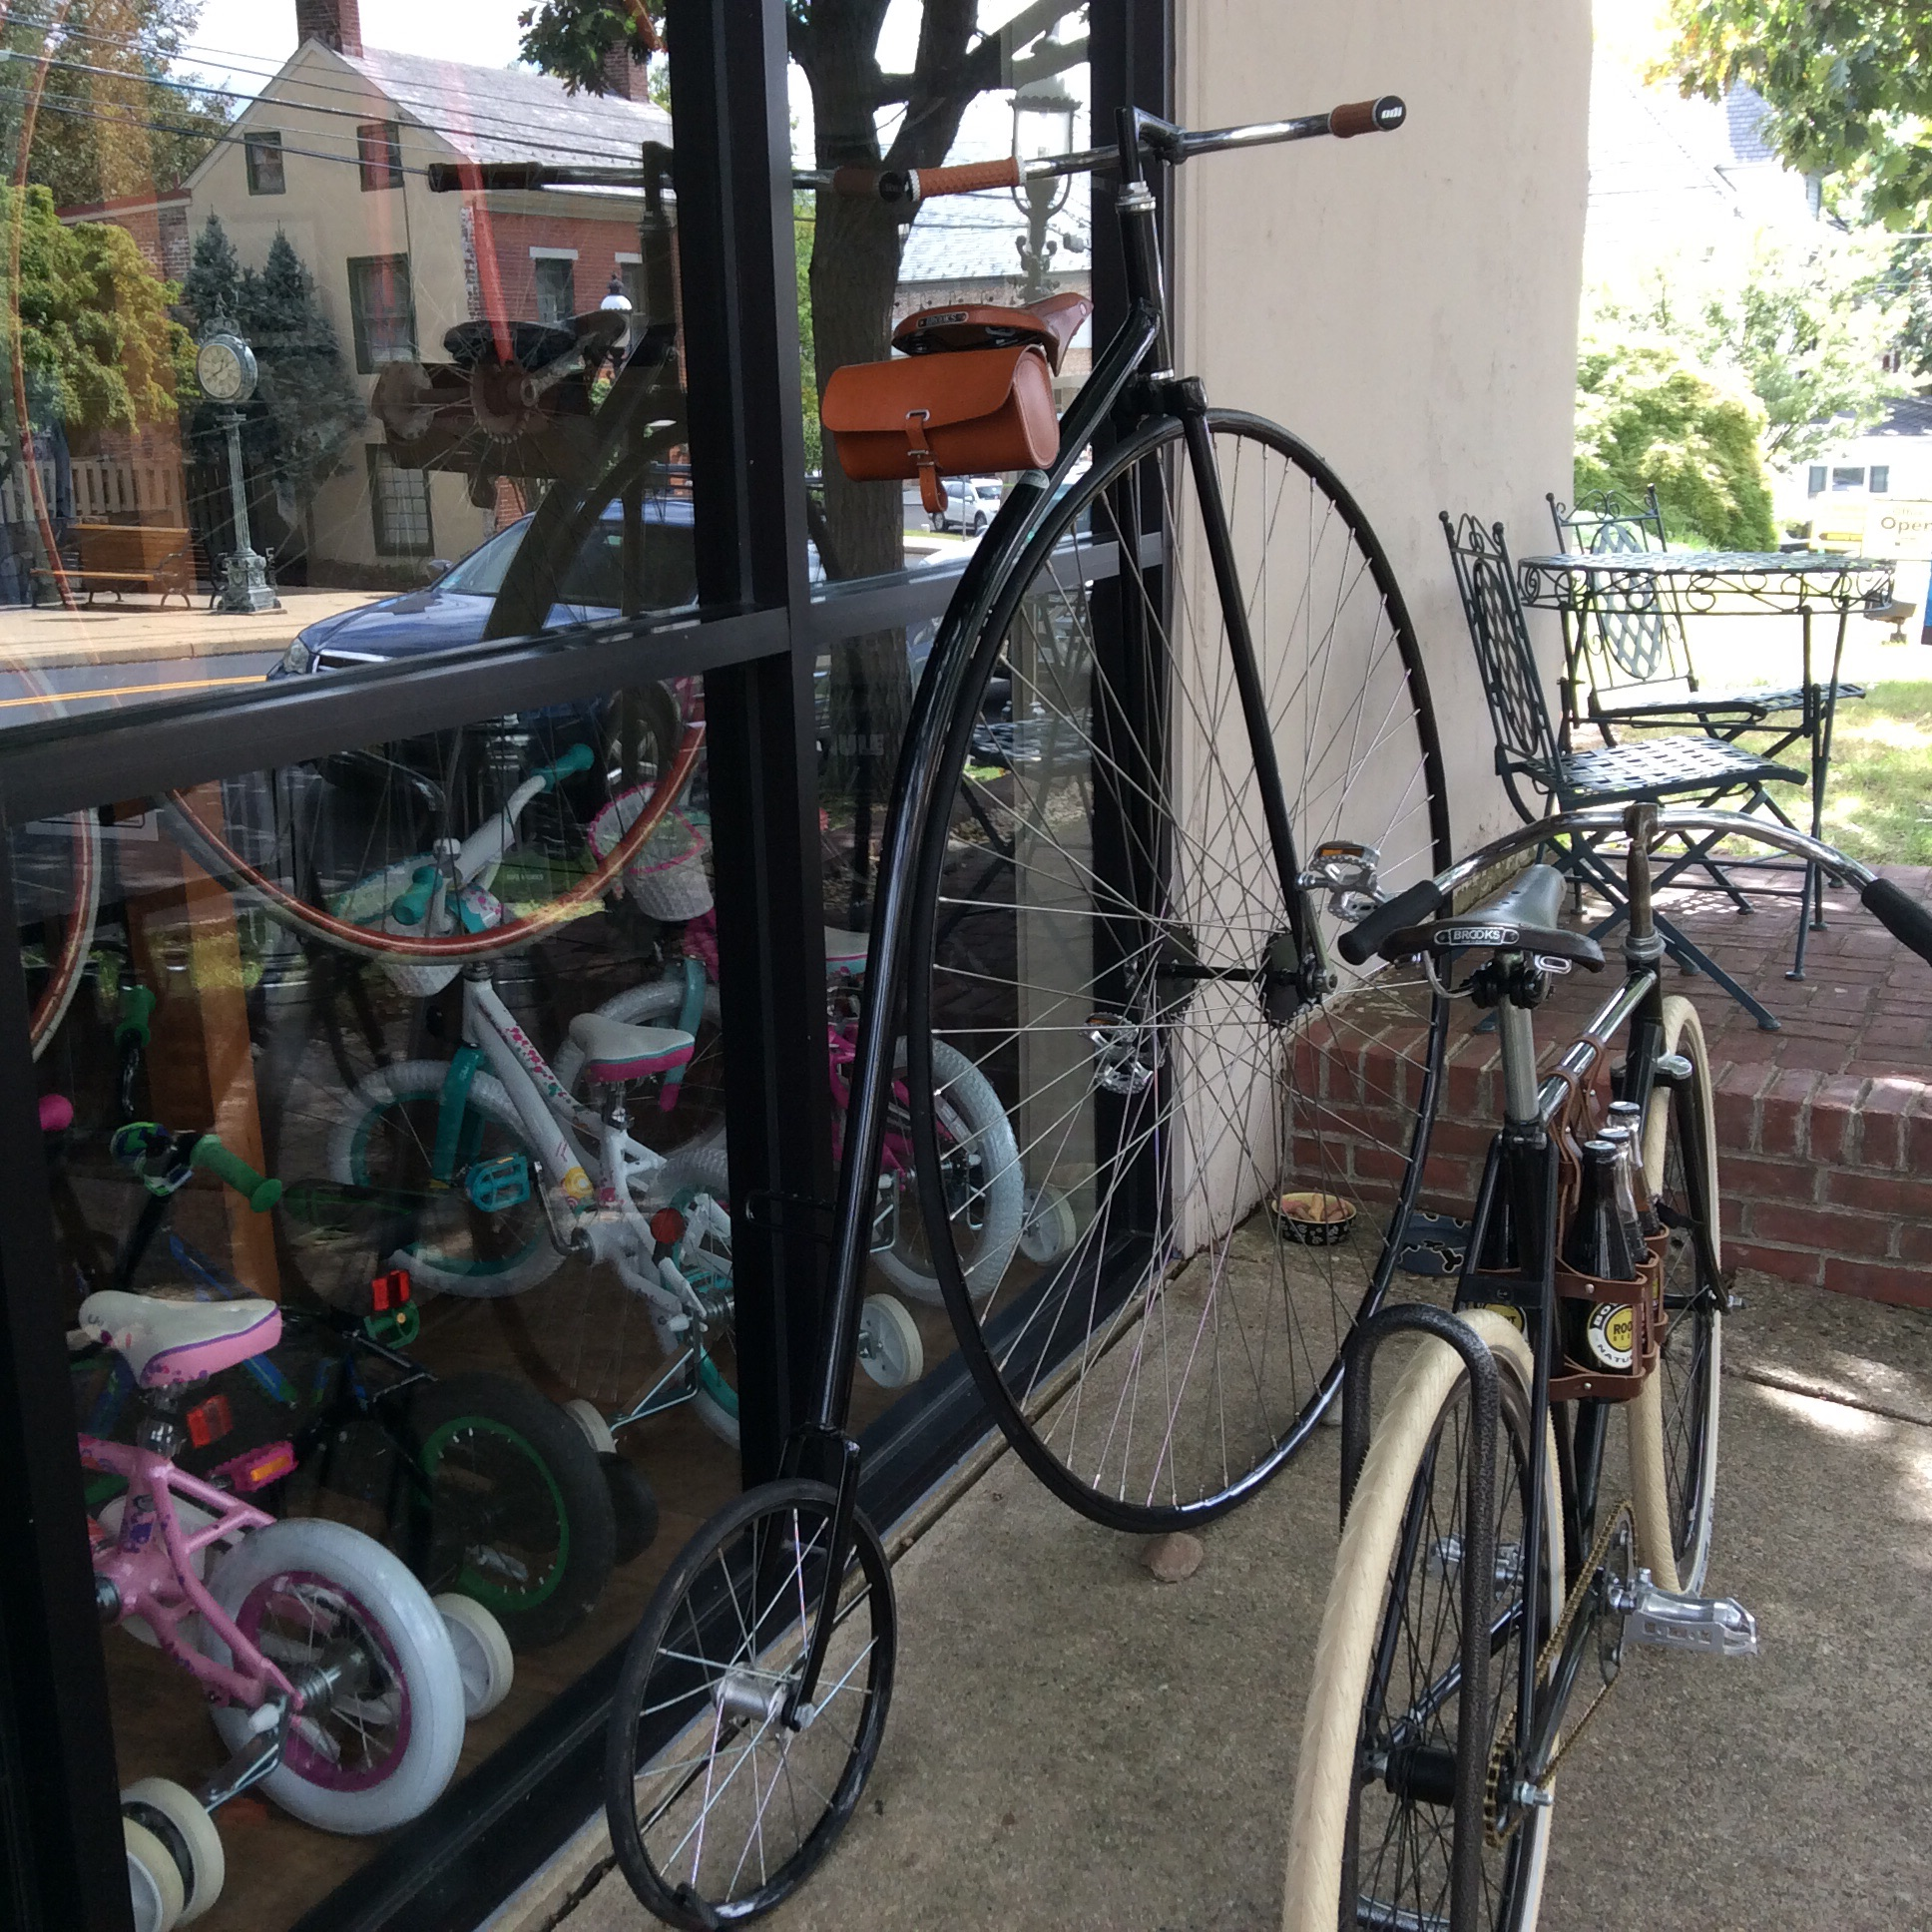 Doylestown Bike Works with two Boneshakers and a six-pack holder.